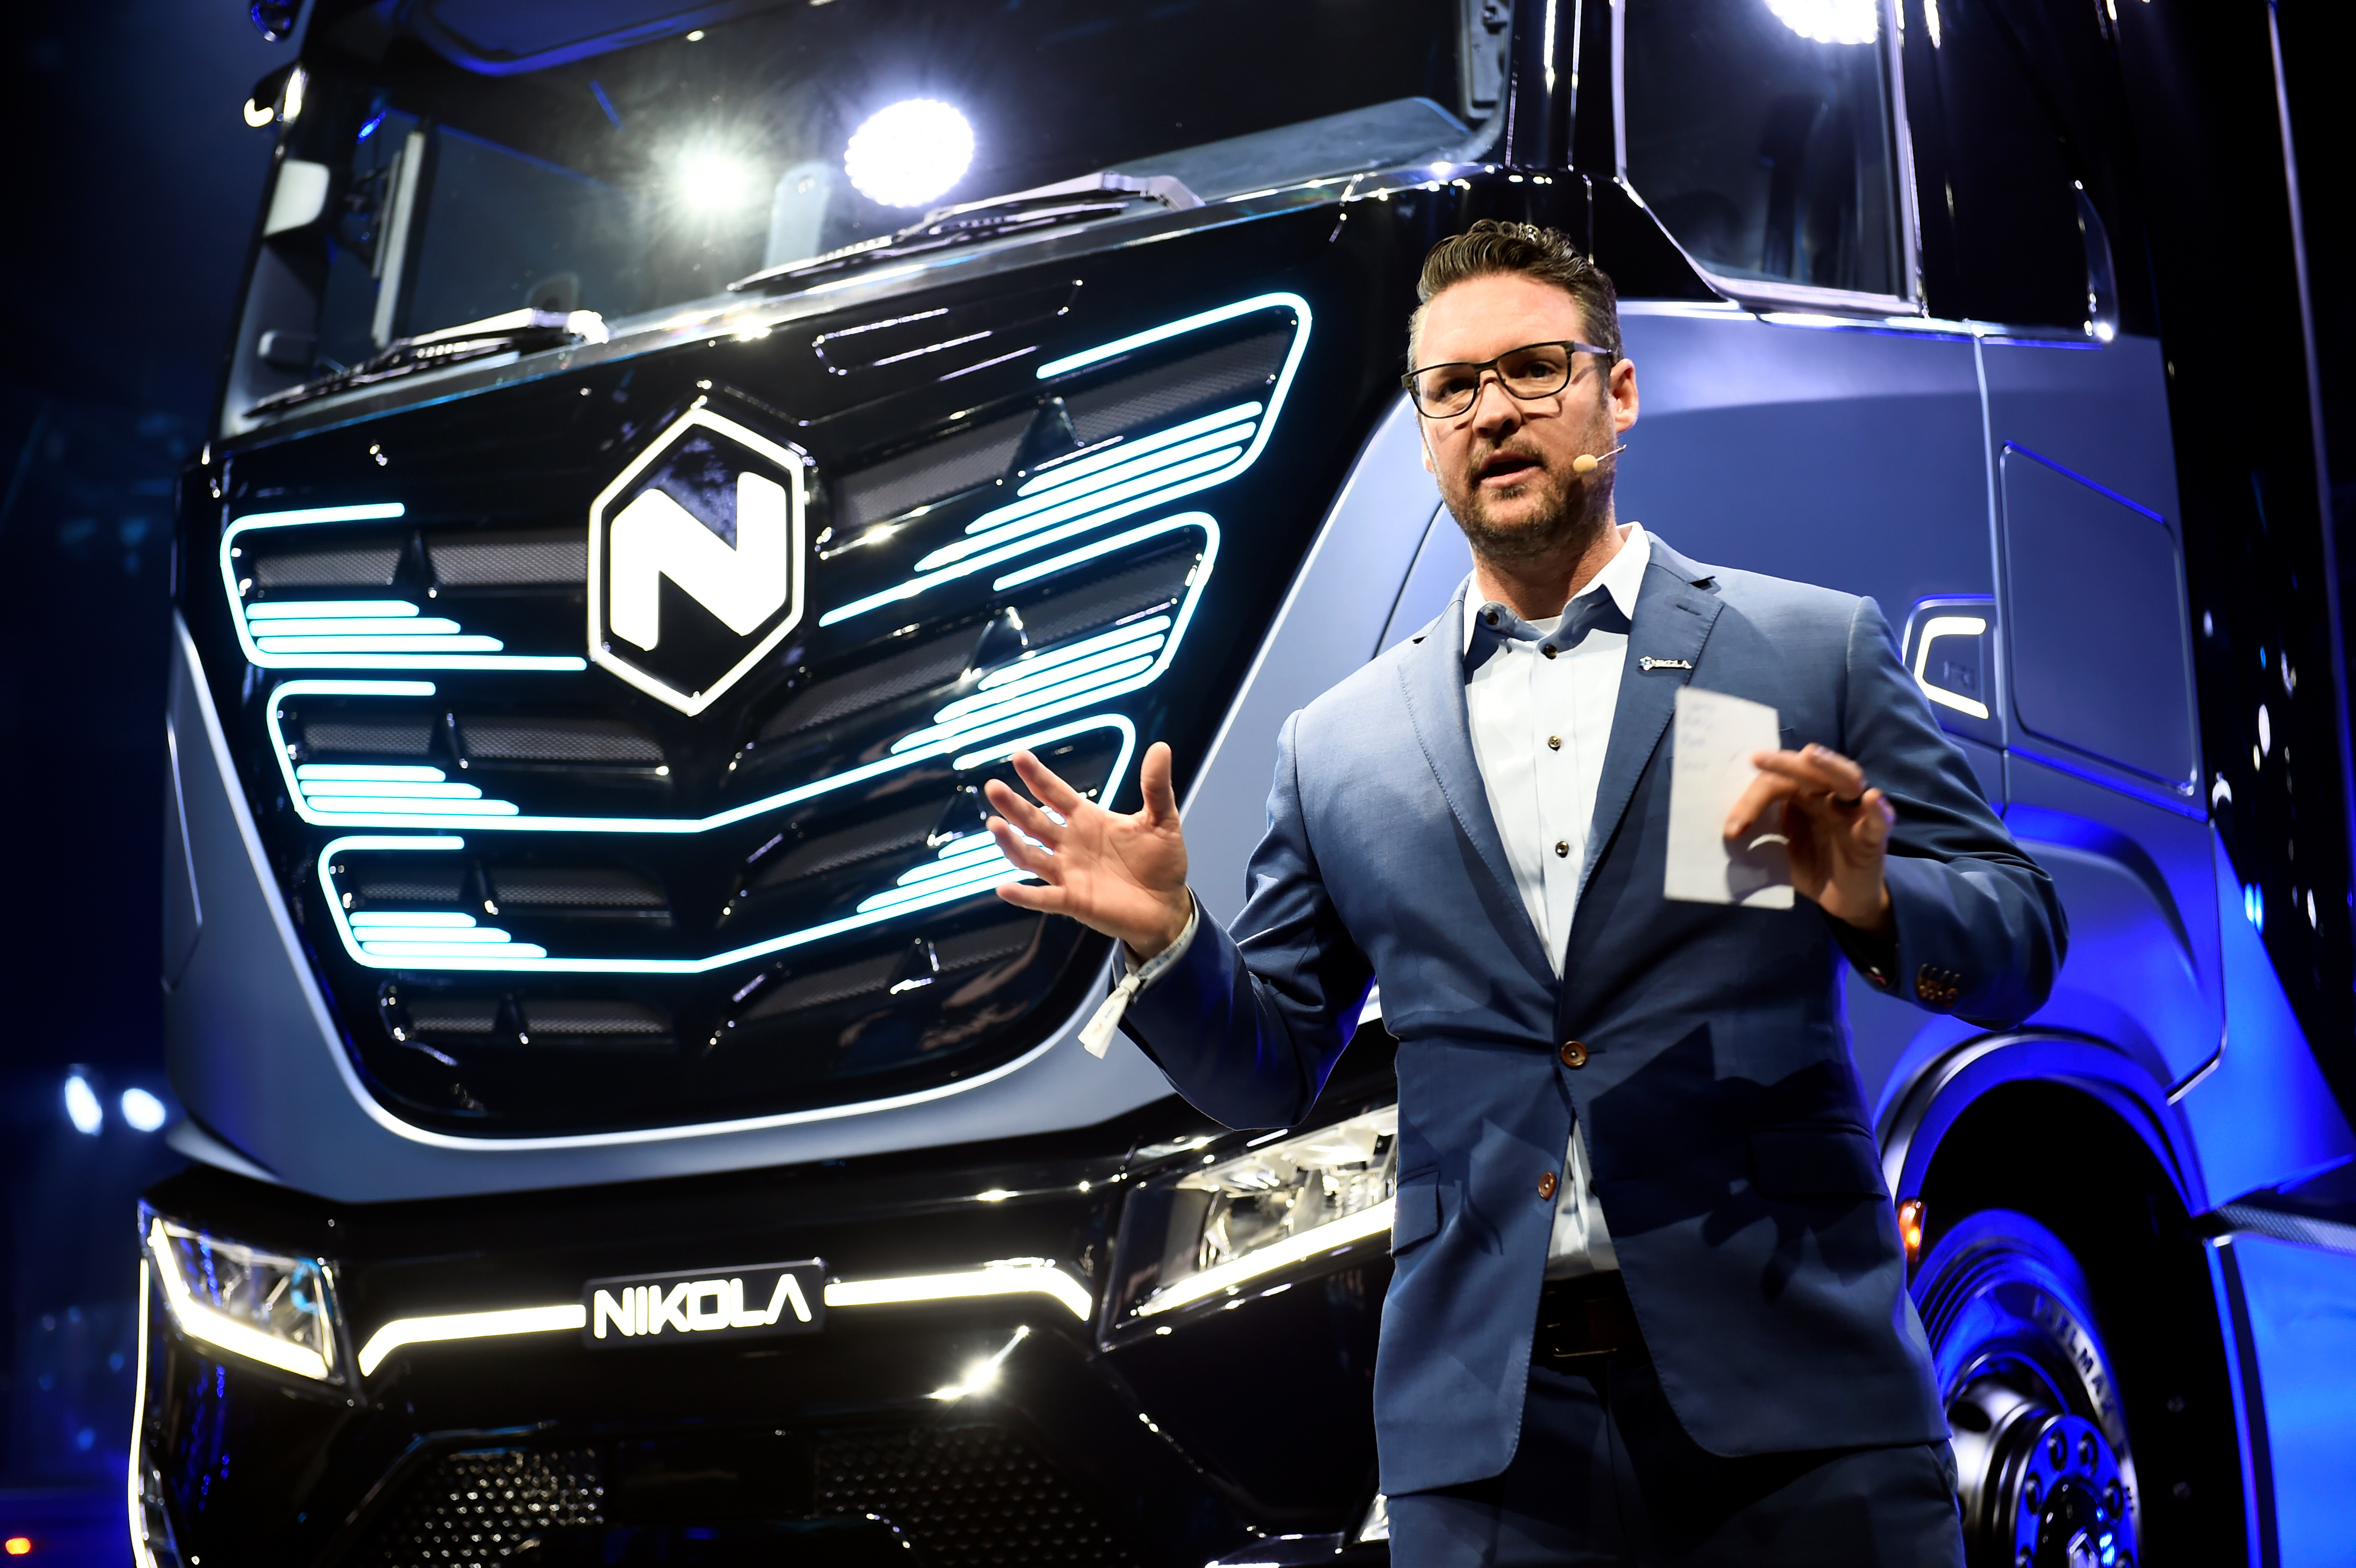 Nikola founder resigns following SEC probe into electric truck business